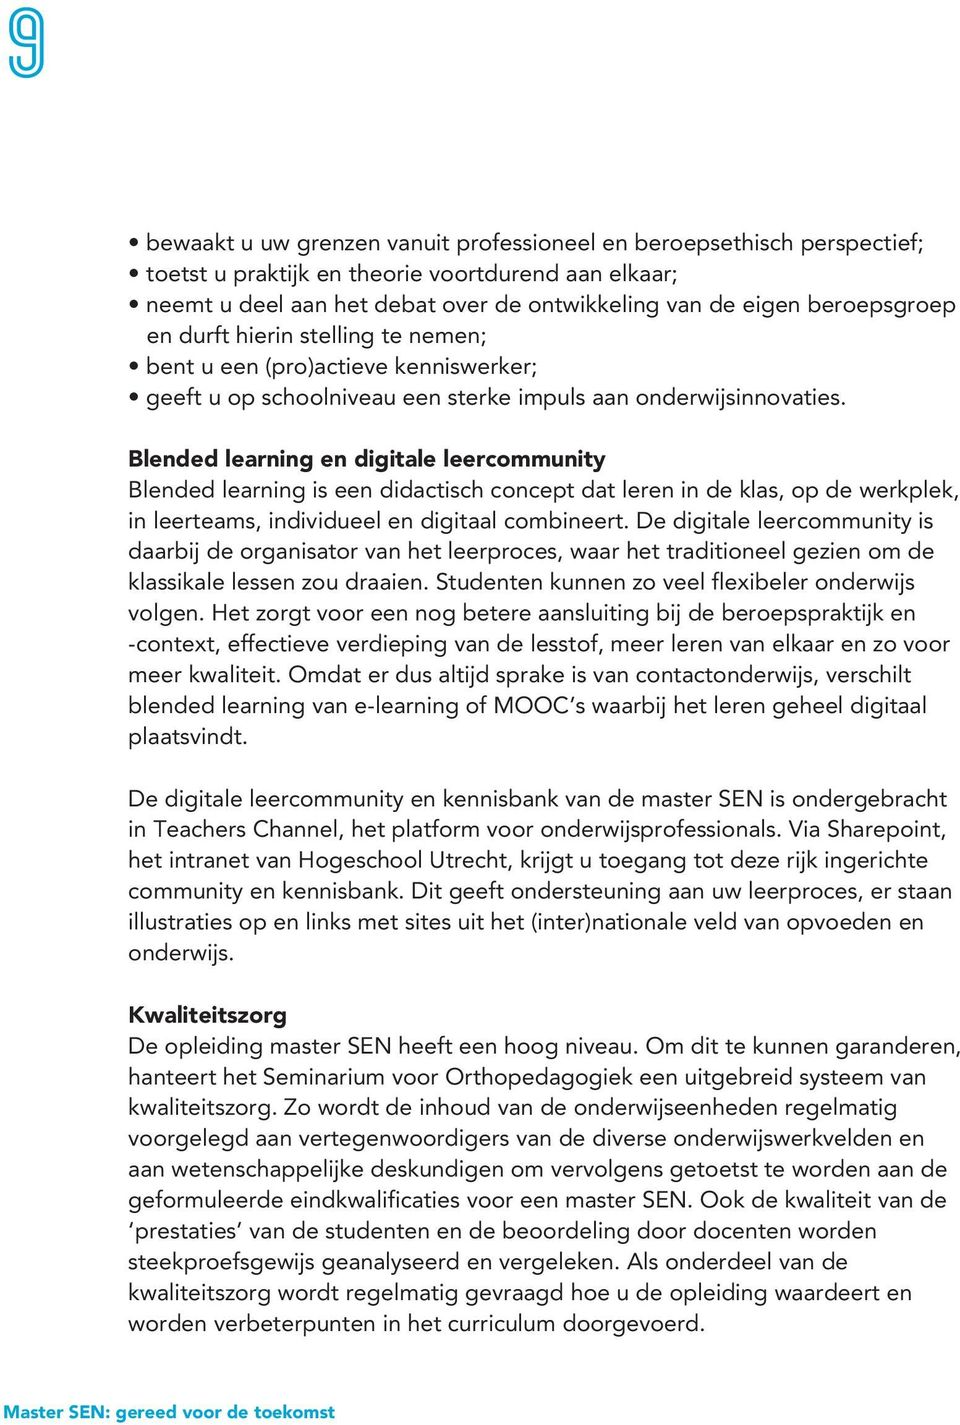 Blended learning en digitale leercommunity Blended learning is een didactisch concept dat leren in de klas, op de werkplek, in leerteams, individueel en digitaal combineert.